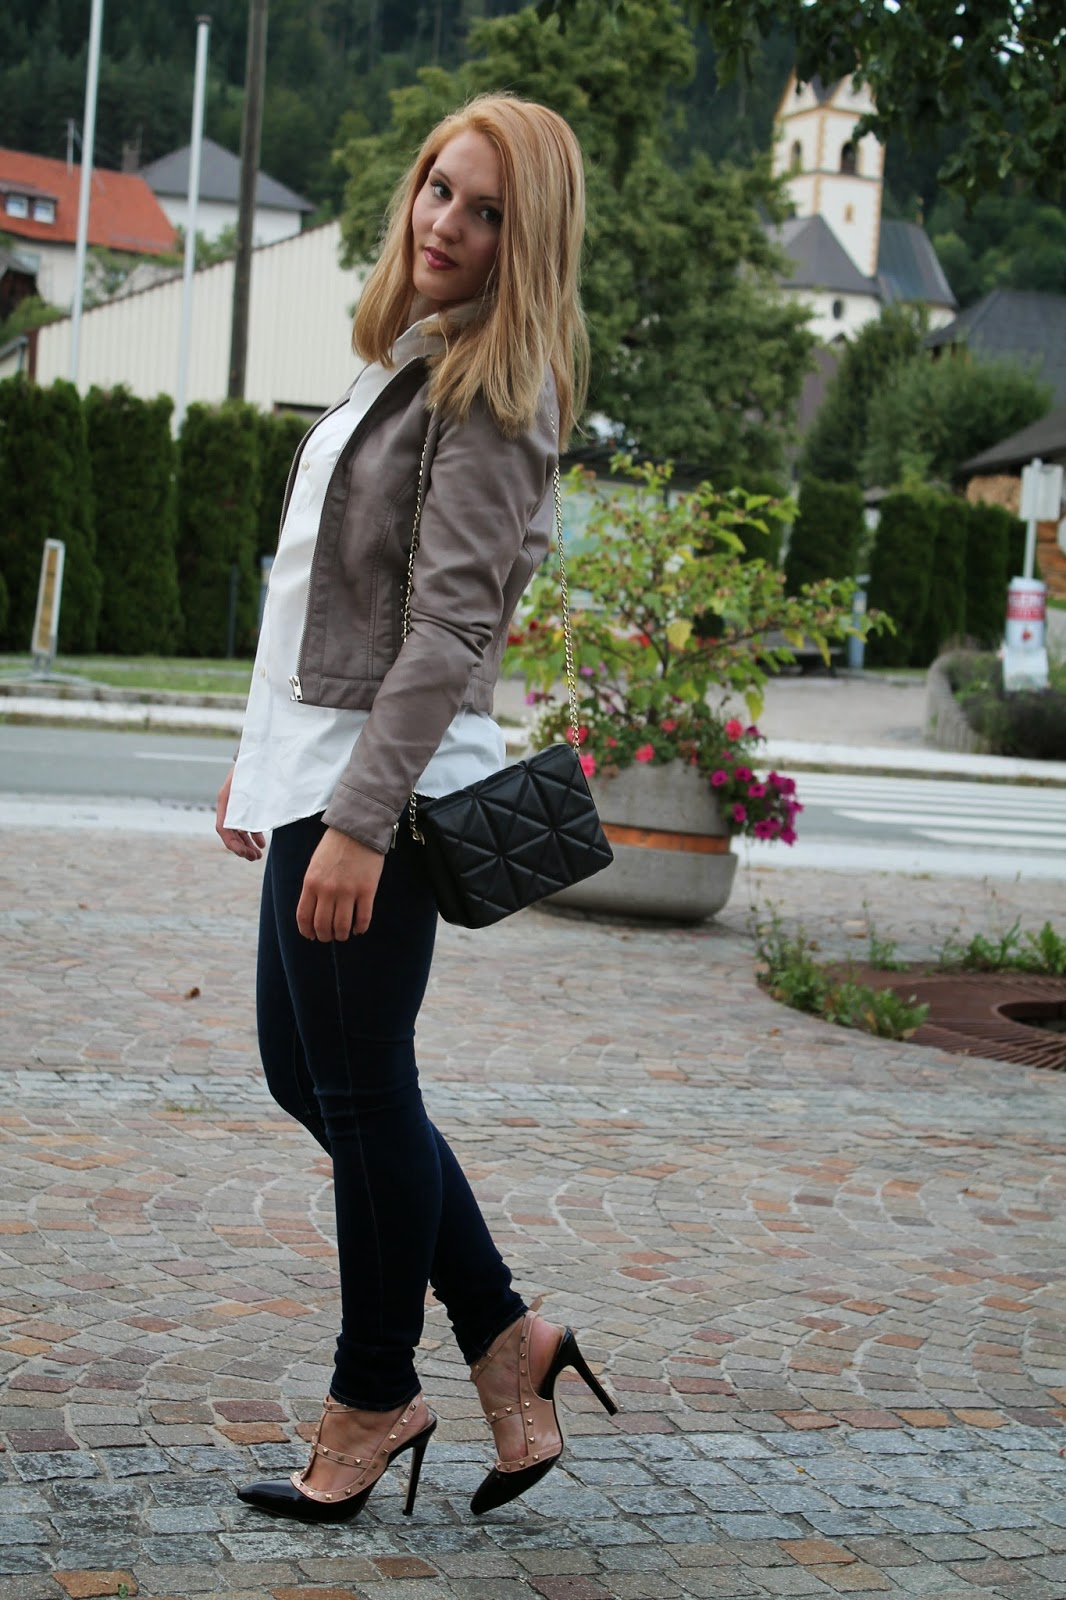 Fashionblogger Austria / Österreich / Deutsch / German / Kärnten / Carinthia / Klagenfurt / Köttmannsdorf / Spring Look / Classy / Edgy / Summer / Summer Style 2014 / Summer Look / Fashionista Look /   / valentino Studded Heels / Zara / H&M / Leather Jacket / Black Chain Crossbody Bag / Boyfriend Blouse / classic Look / Elegant / Trend/ Edgy /